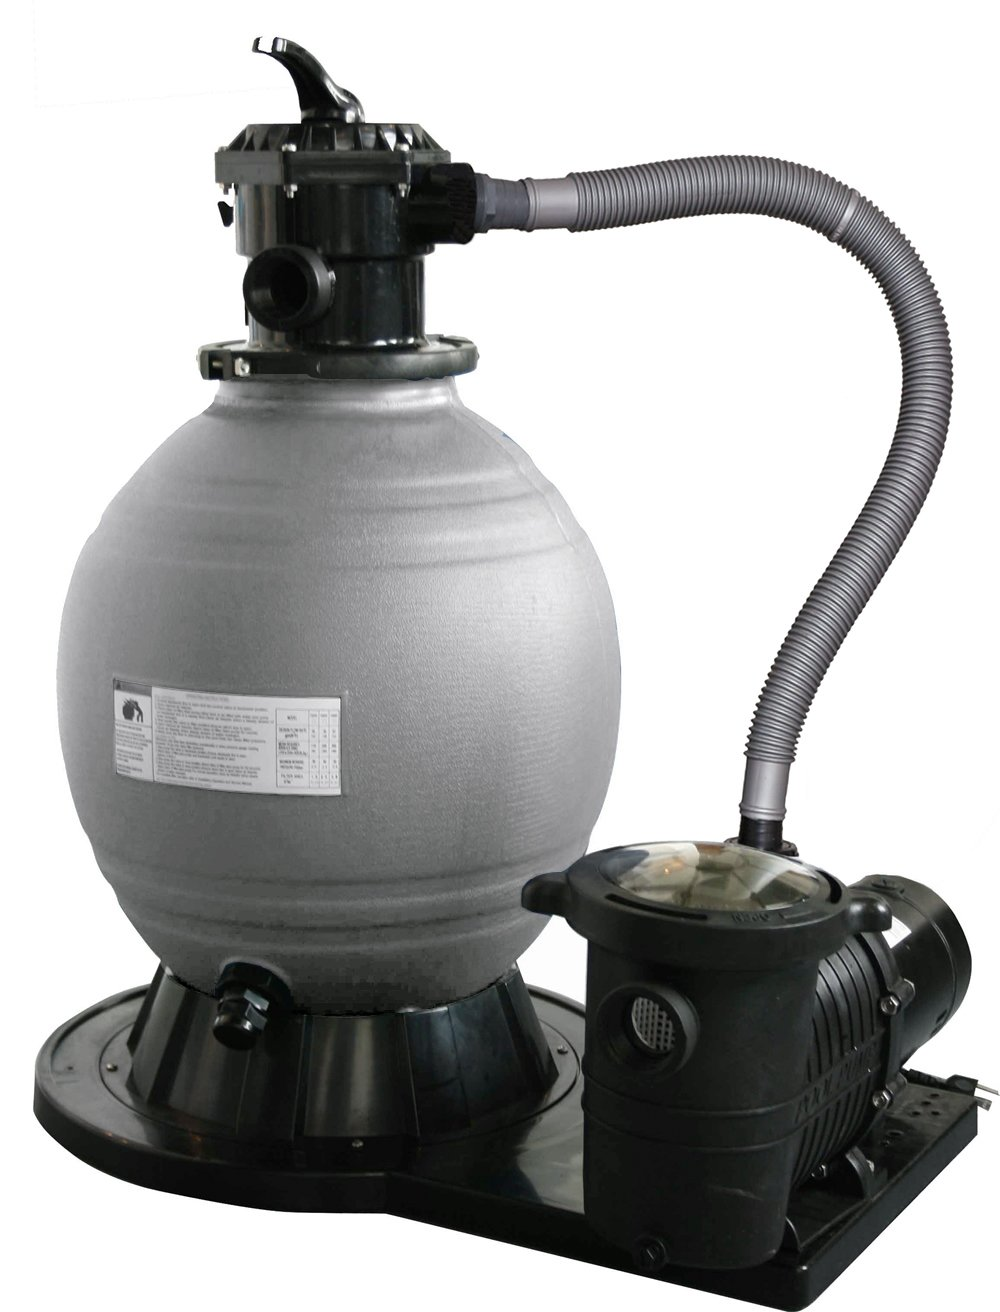 Amazon.com : Blue Wave 22-Inch Sand Filter System with 1-1/2 HP Pump for  Above Ground Pools : Garden & Outdoor